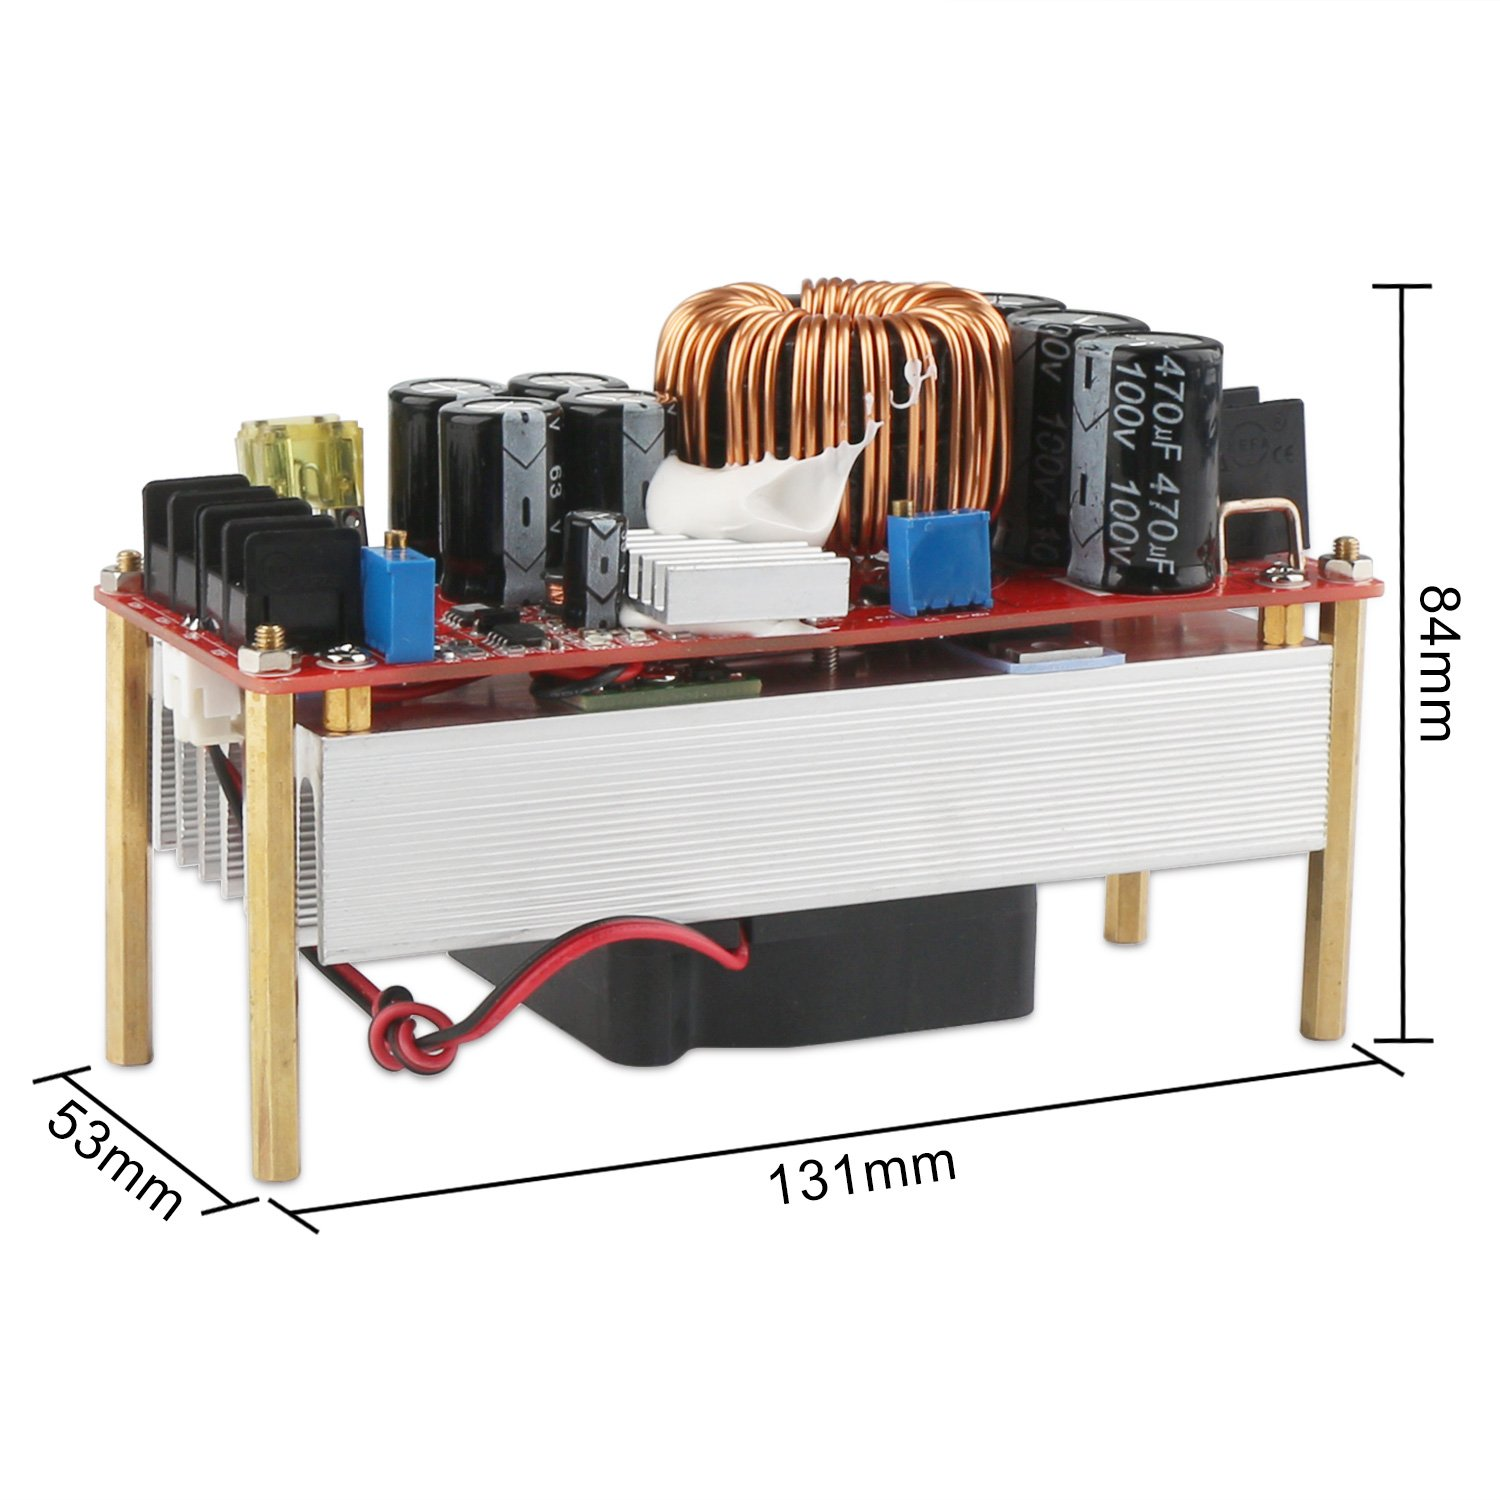 Boost Voltage Converter, DROK 1500W Voltage Regulator Booster DC 10V-60V 12V Step Up to DC 12V-90V 24V 30A Power Supply Module High Power Volt Transformer Circuit Board with Cooling Fan by DROK (Image #3)